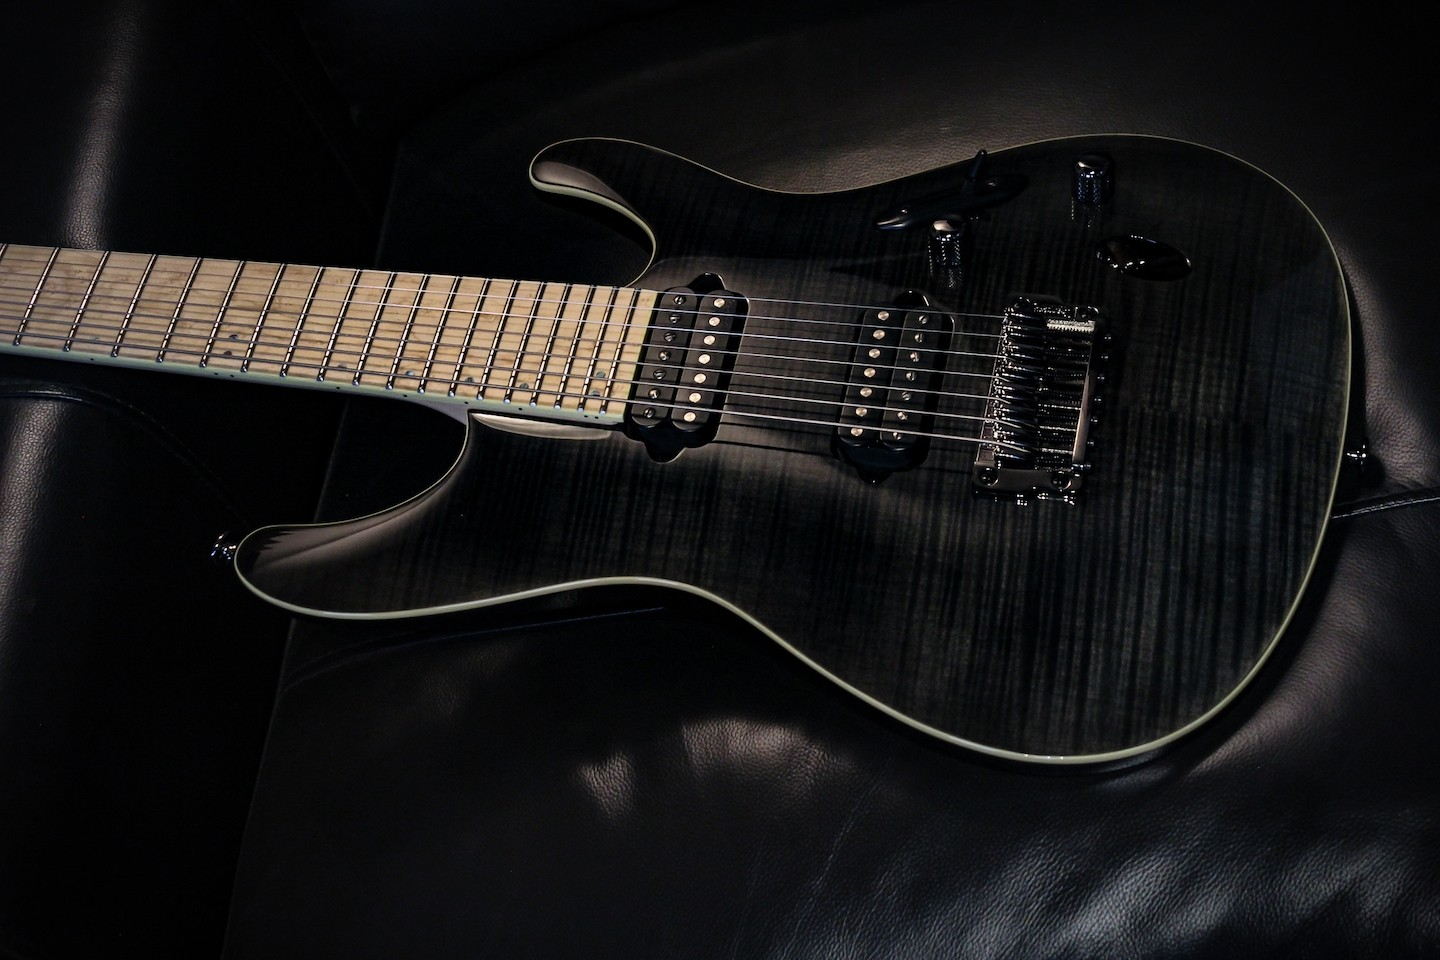 ibanez prestige s6527mffx exclusive limited run 7 string black haze the axe palace. Black Bedroom Furniture Sets. Home Design Ideas